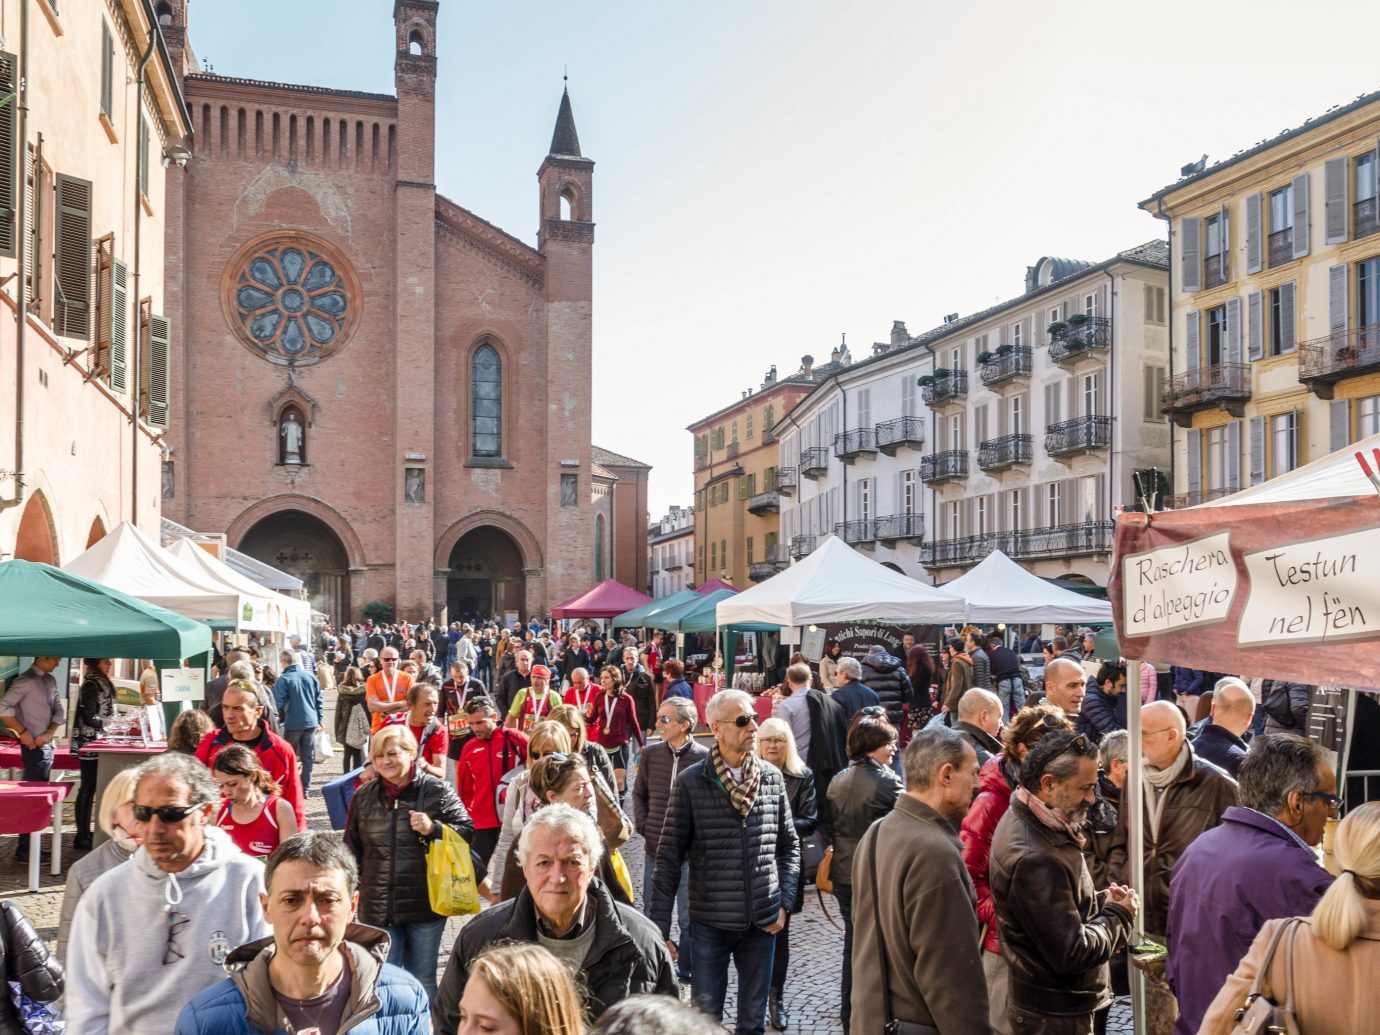 Food + Drink Hotels Italy Luxury Travel Trip Ideas building person outdoor people marketplace market City public space street Town crowd bazaar stall tourism group flea market fair fête town square Downtown pedestrian